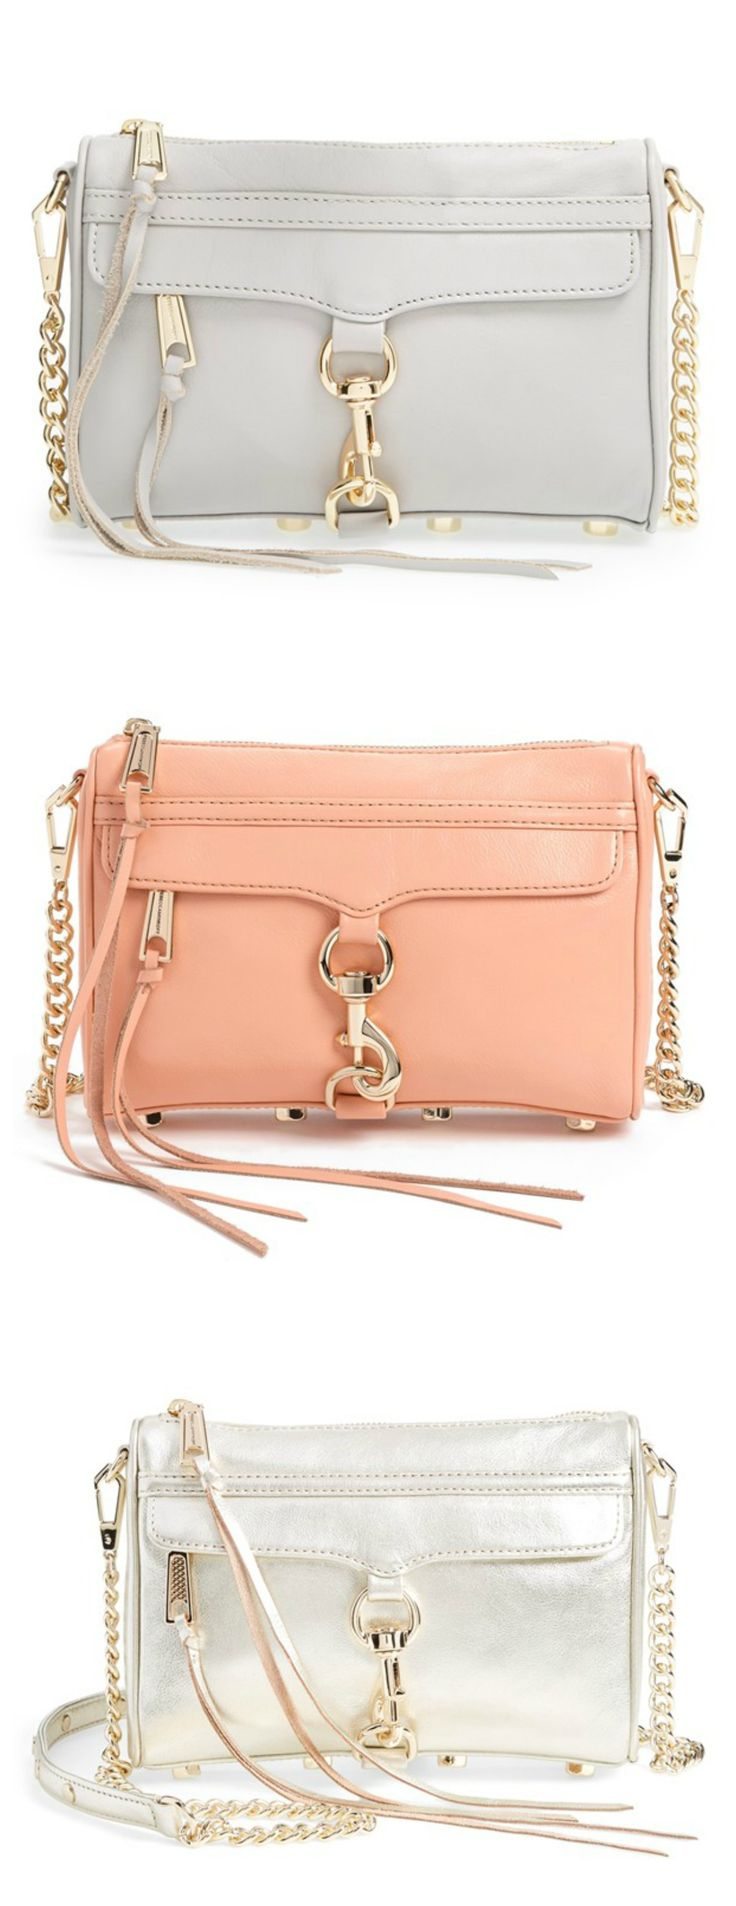 59 Best Bags Images On Pinterest Backpack Couture And Nucelle Women Leather Purse Satchel Shoulder Bag Handbag Lock Gorgeous Glitter Elegant Blue Obsessed With These Cute Rebecca Minkoff Crossbody